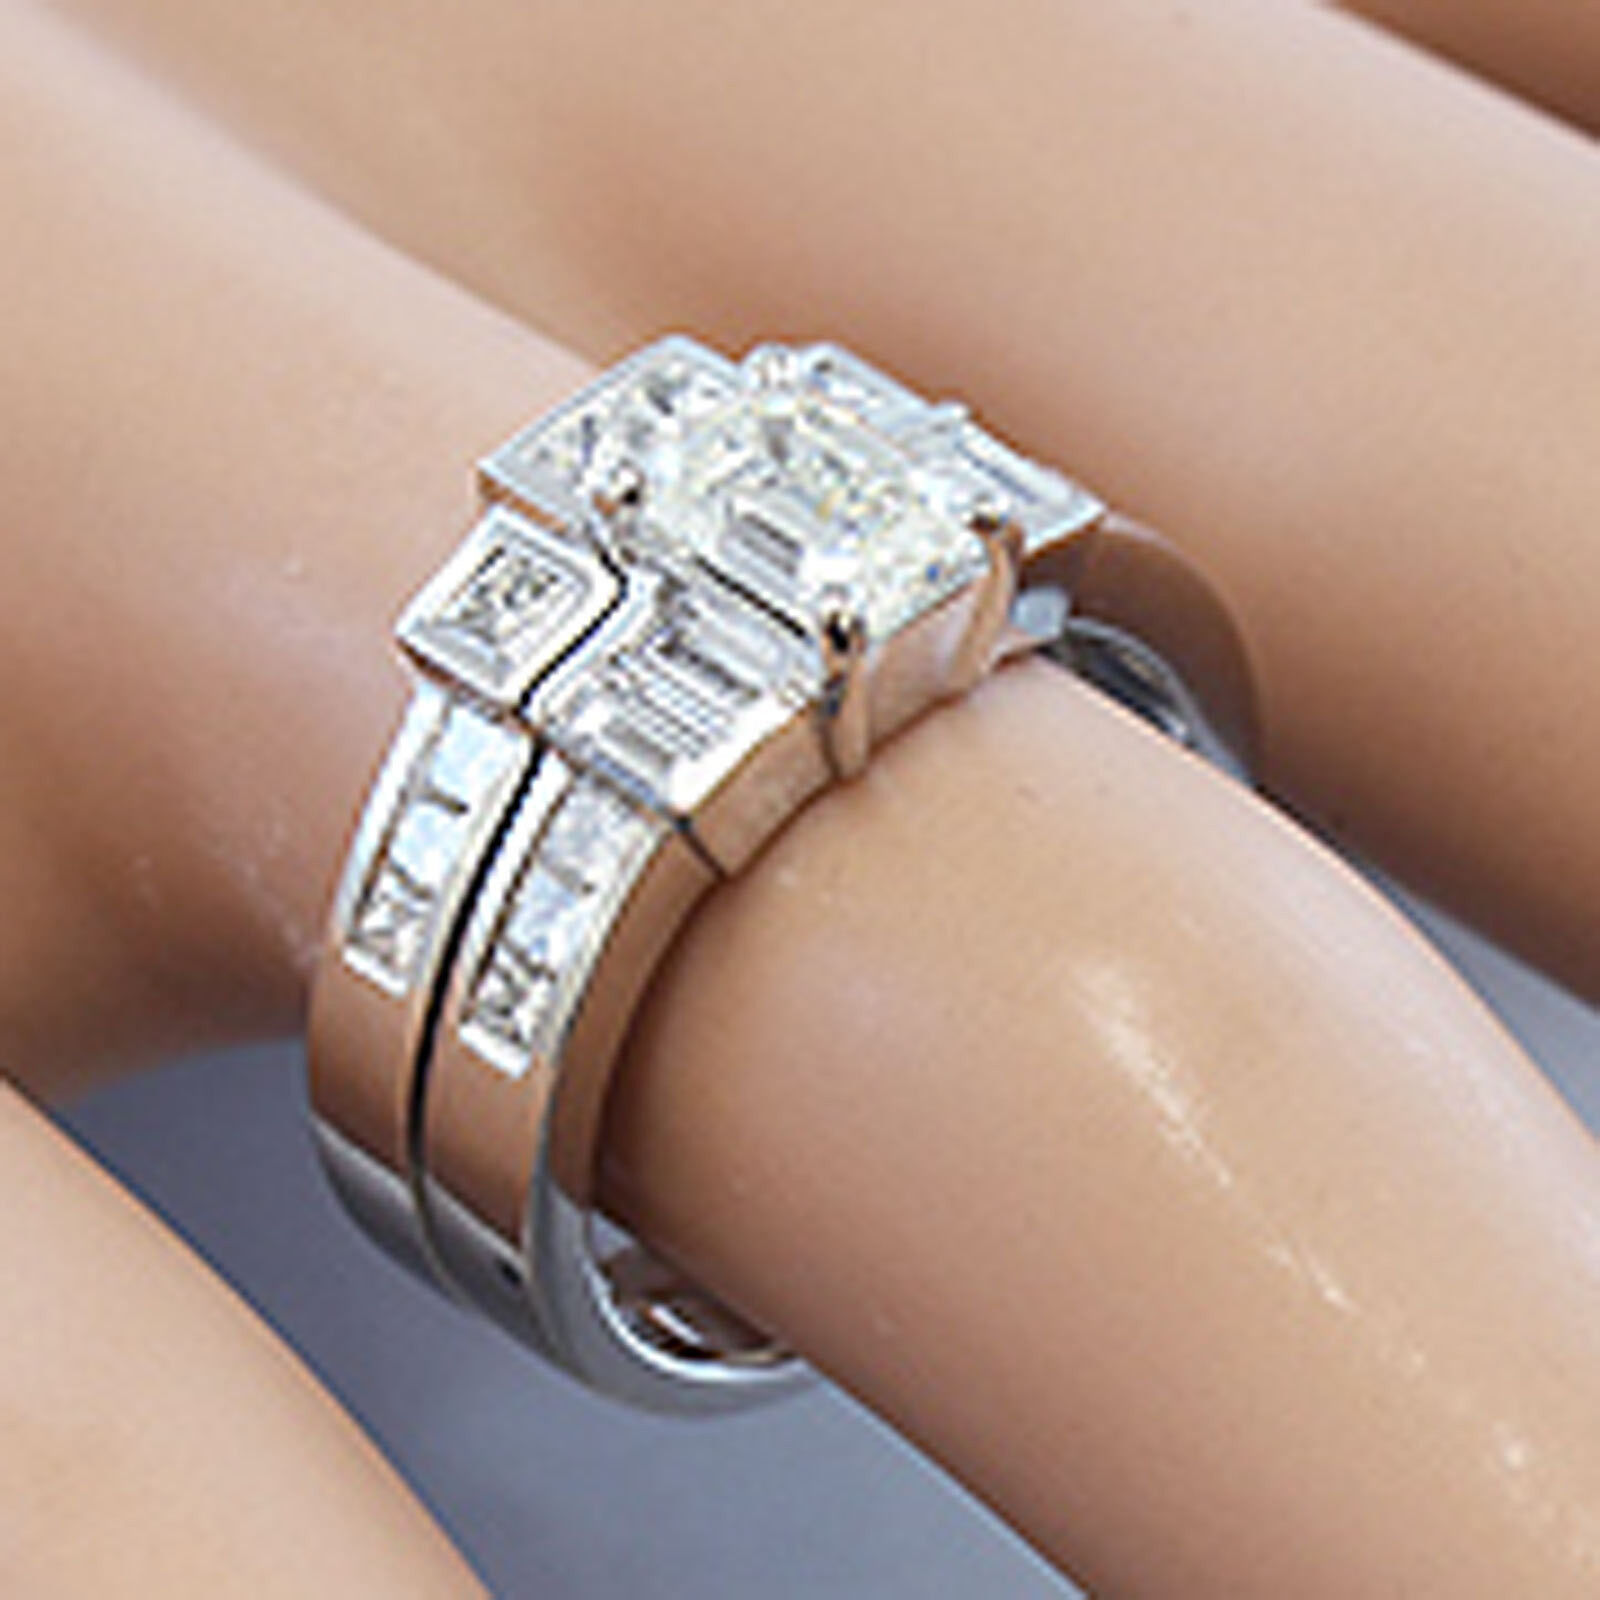 14K SOLID WHITE gold EMERALD CUT DIAMOND ENGAGEMENT RING ART DECO STYLE 2.00CTW